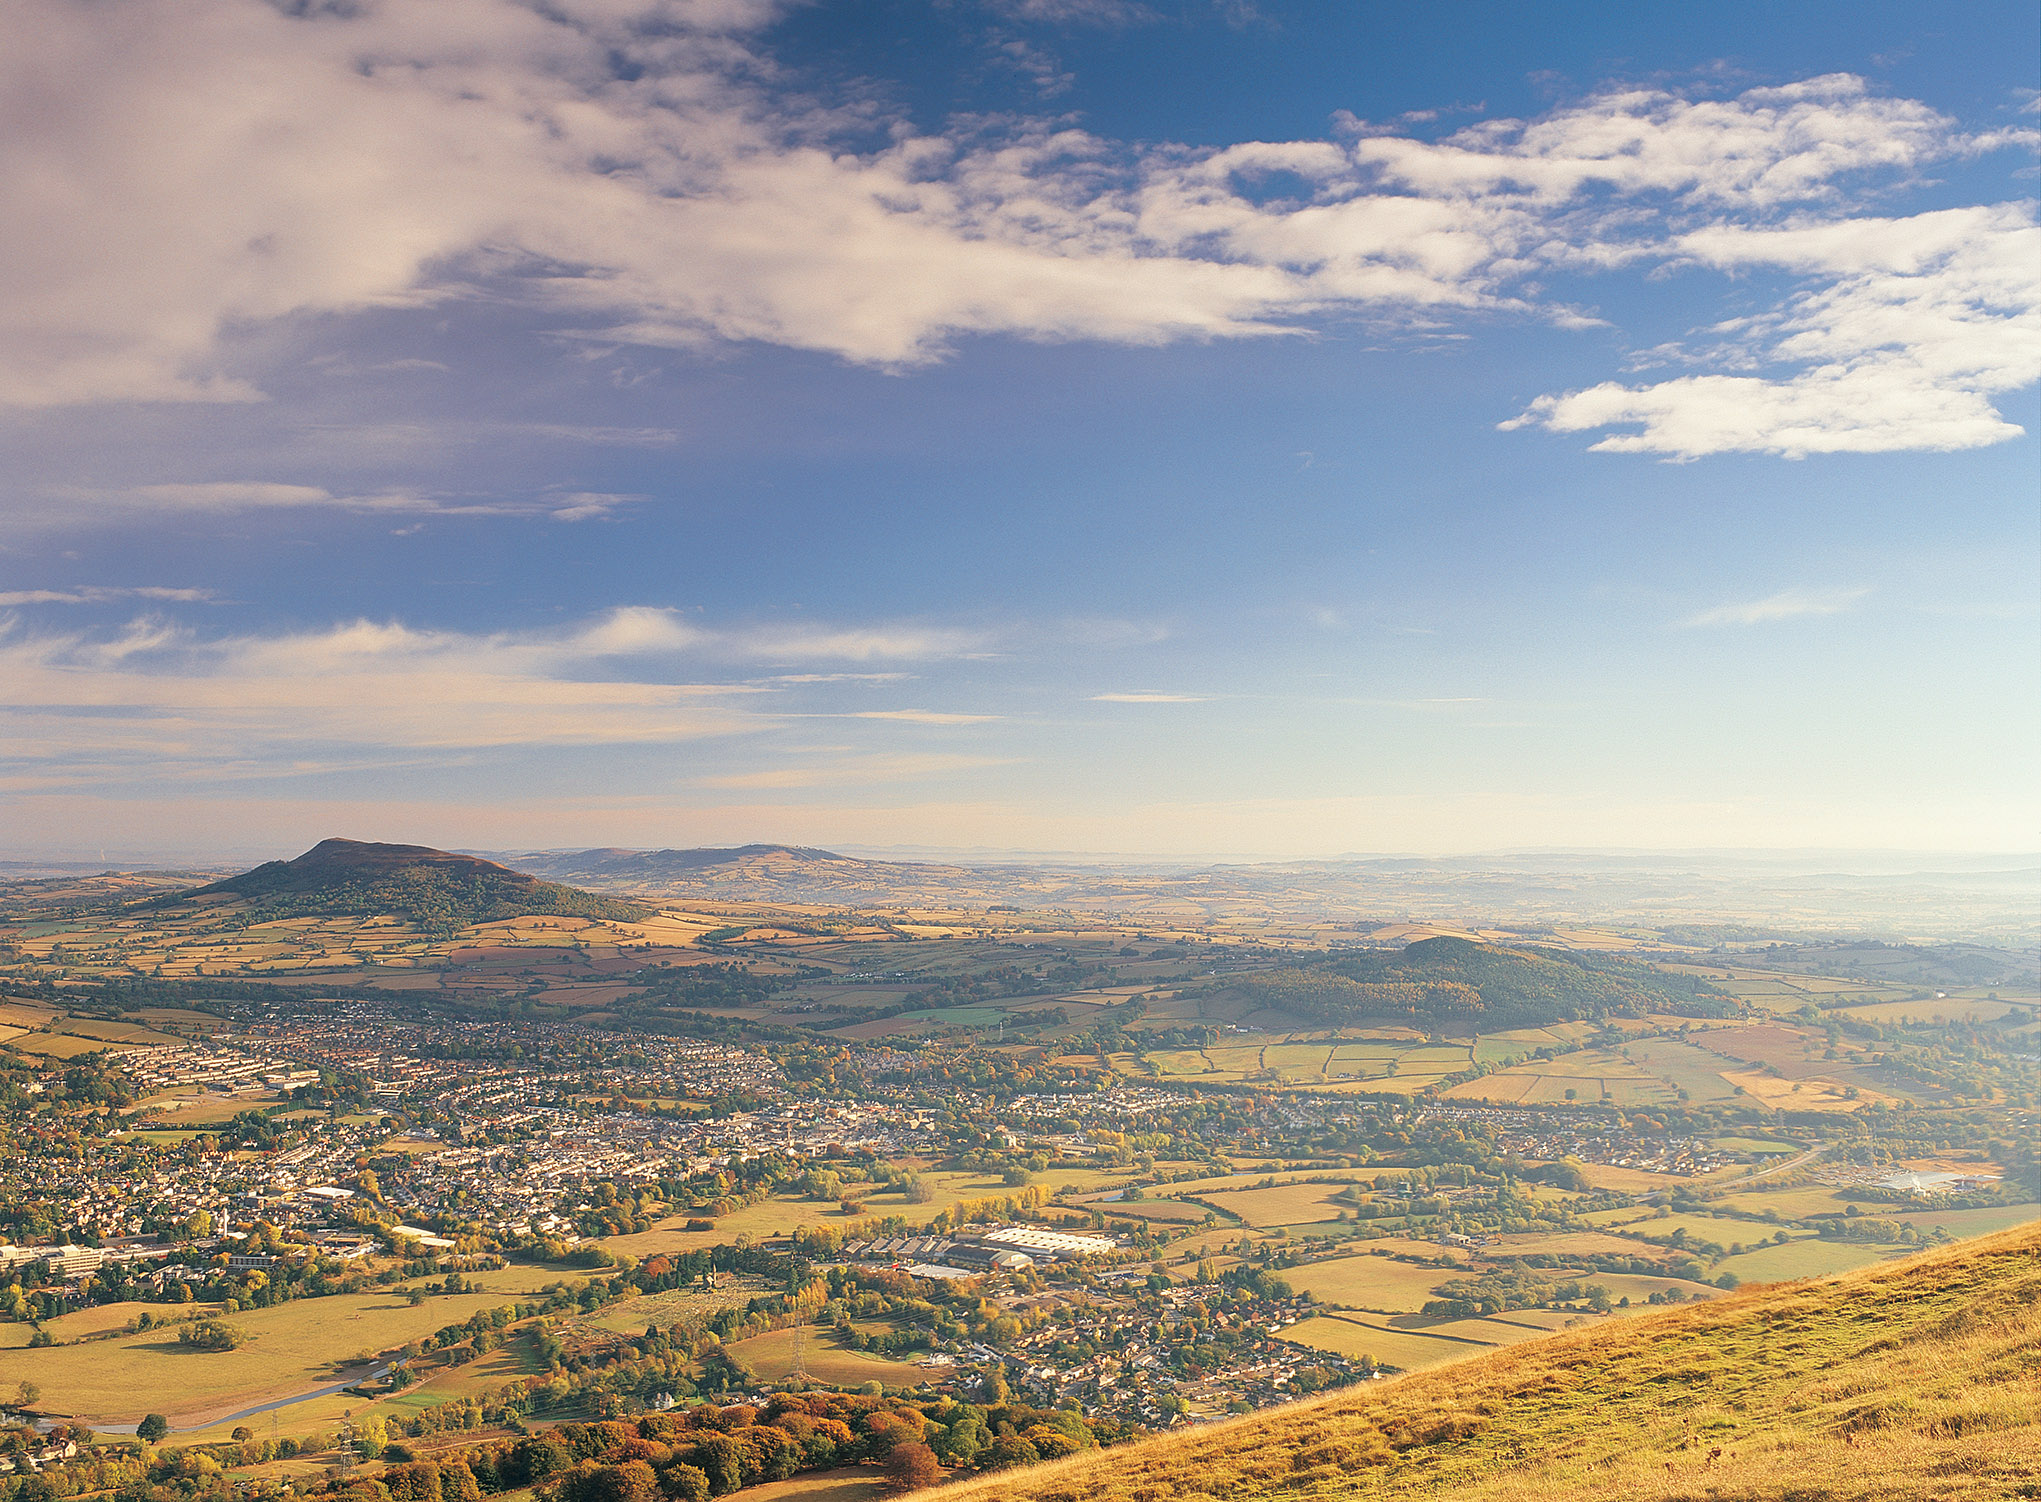 View of Abergavenny from the Blorenge mountain